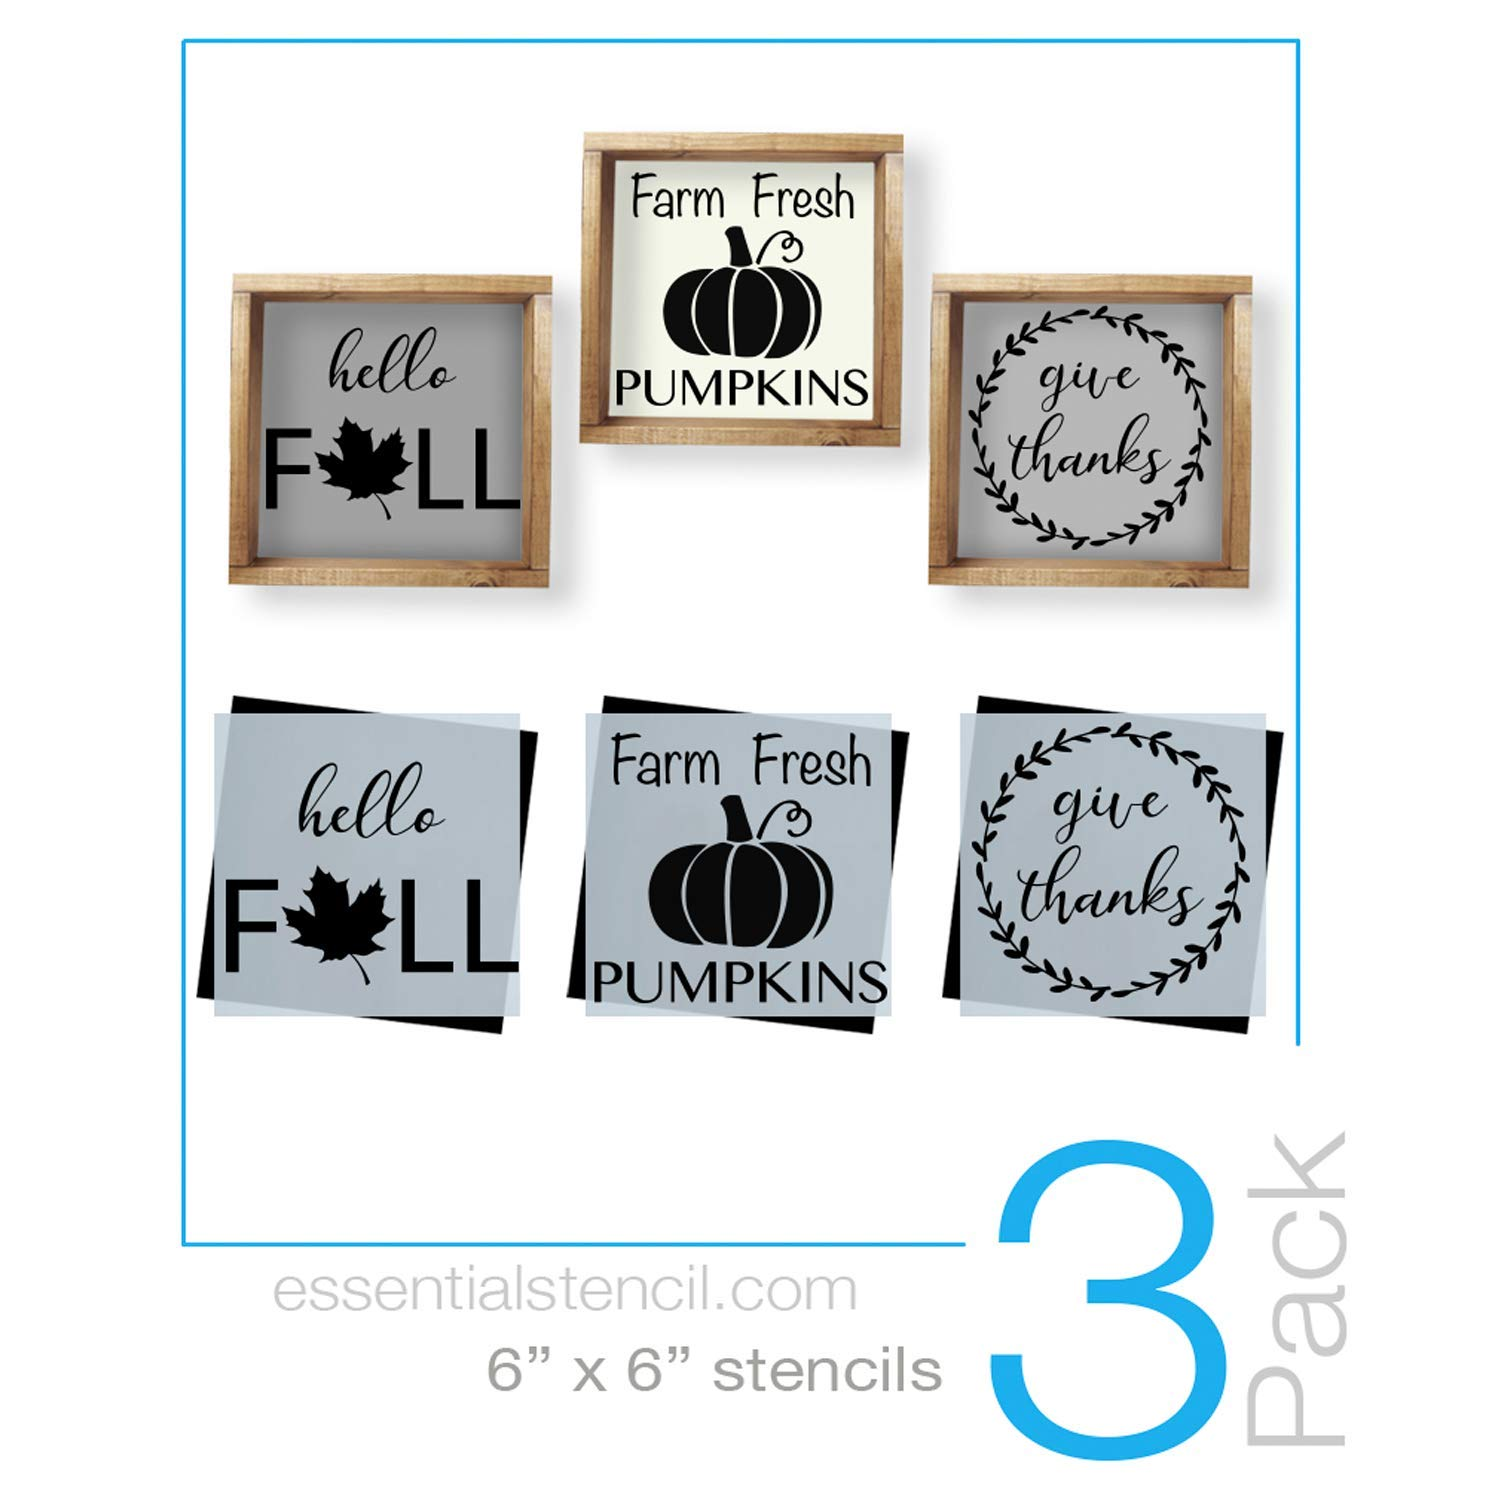 Give Thanks, Farm Fresh Pumpkins, Hello Fall Stencil Set | Reusable Sign Stencils for Painting on Wood | 3 Pack | Ideal for Wood Signs, Walls, Furniture (DIY Fall Home Decor)